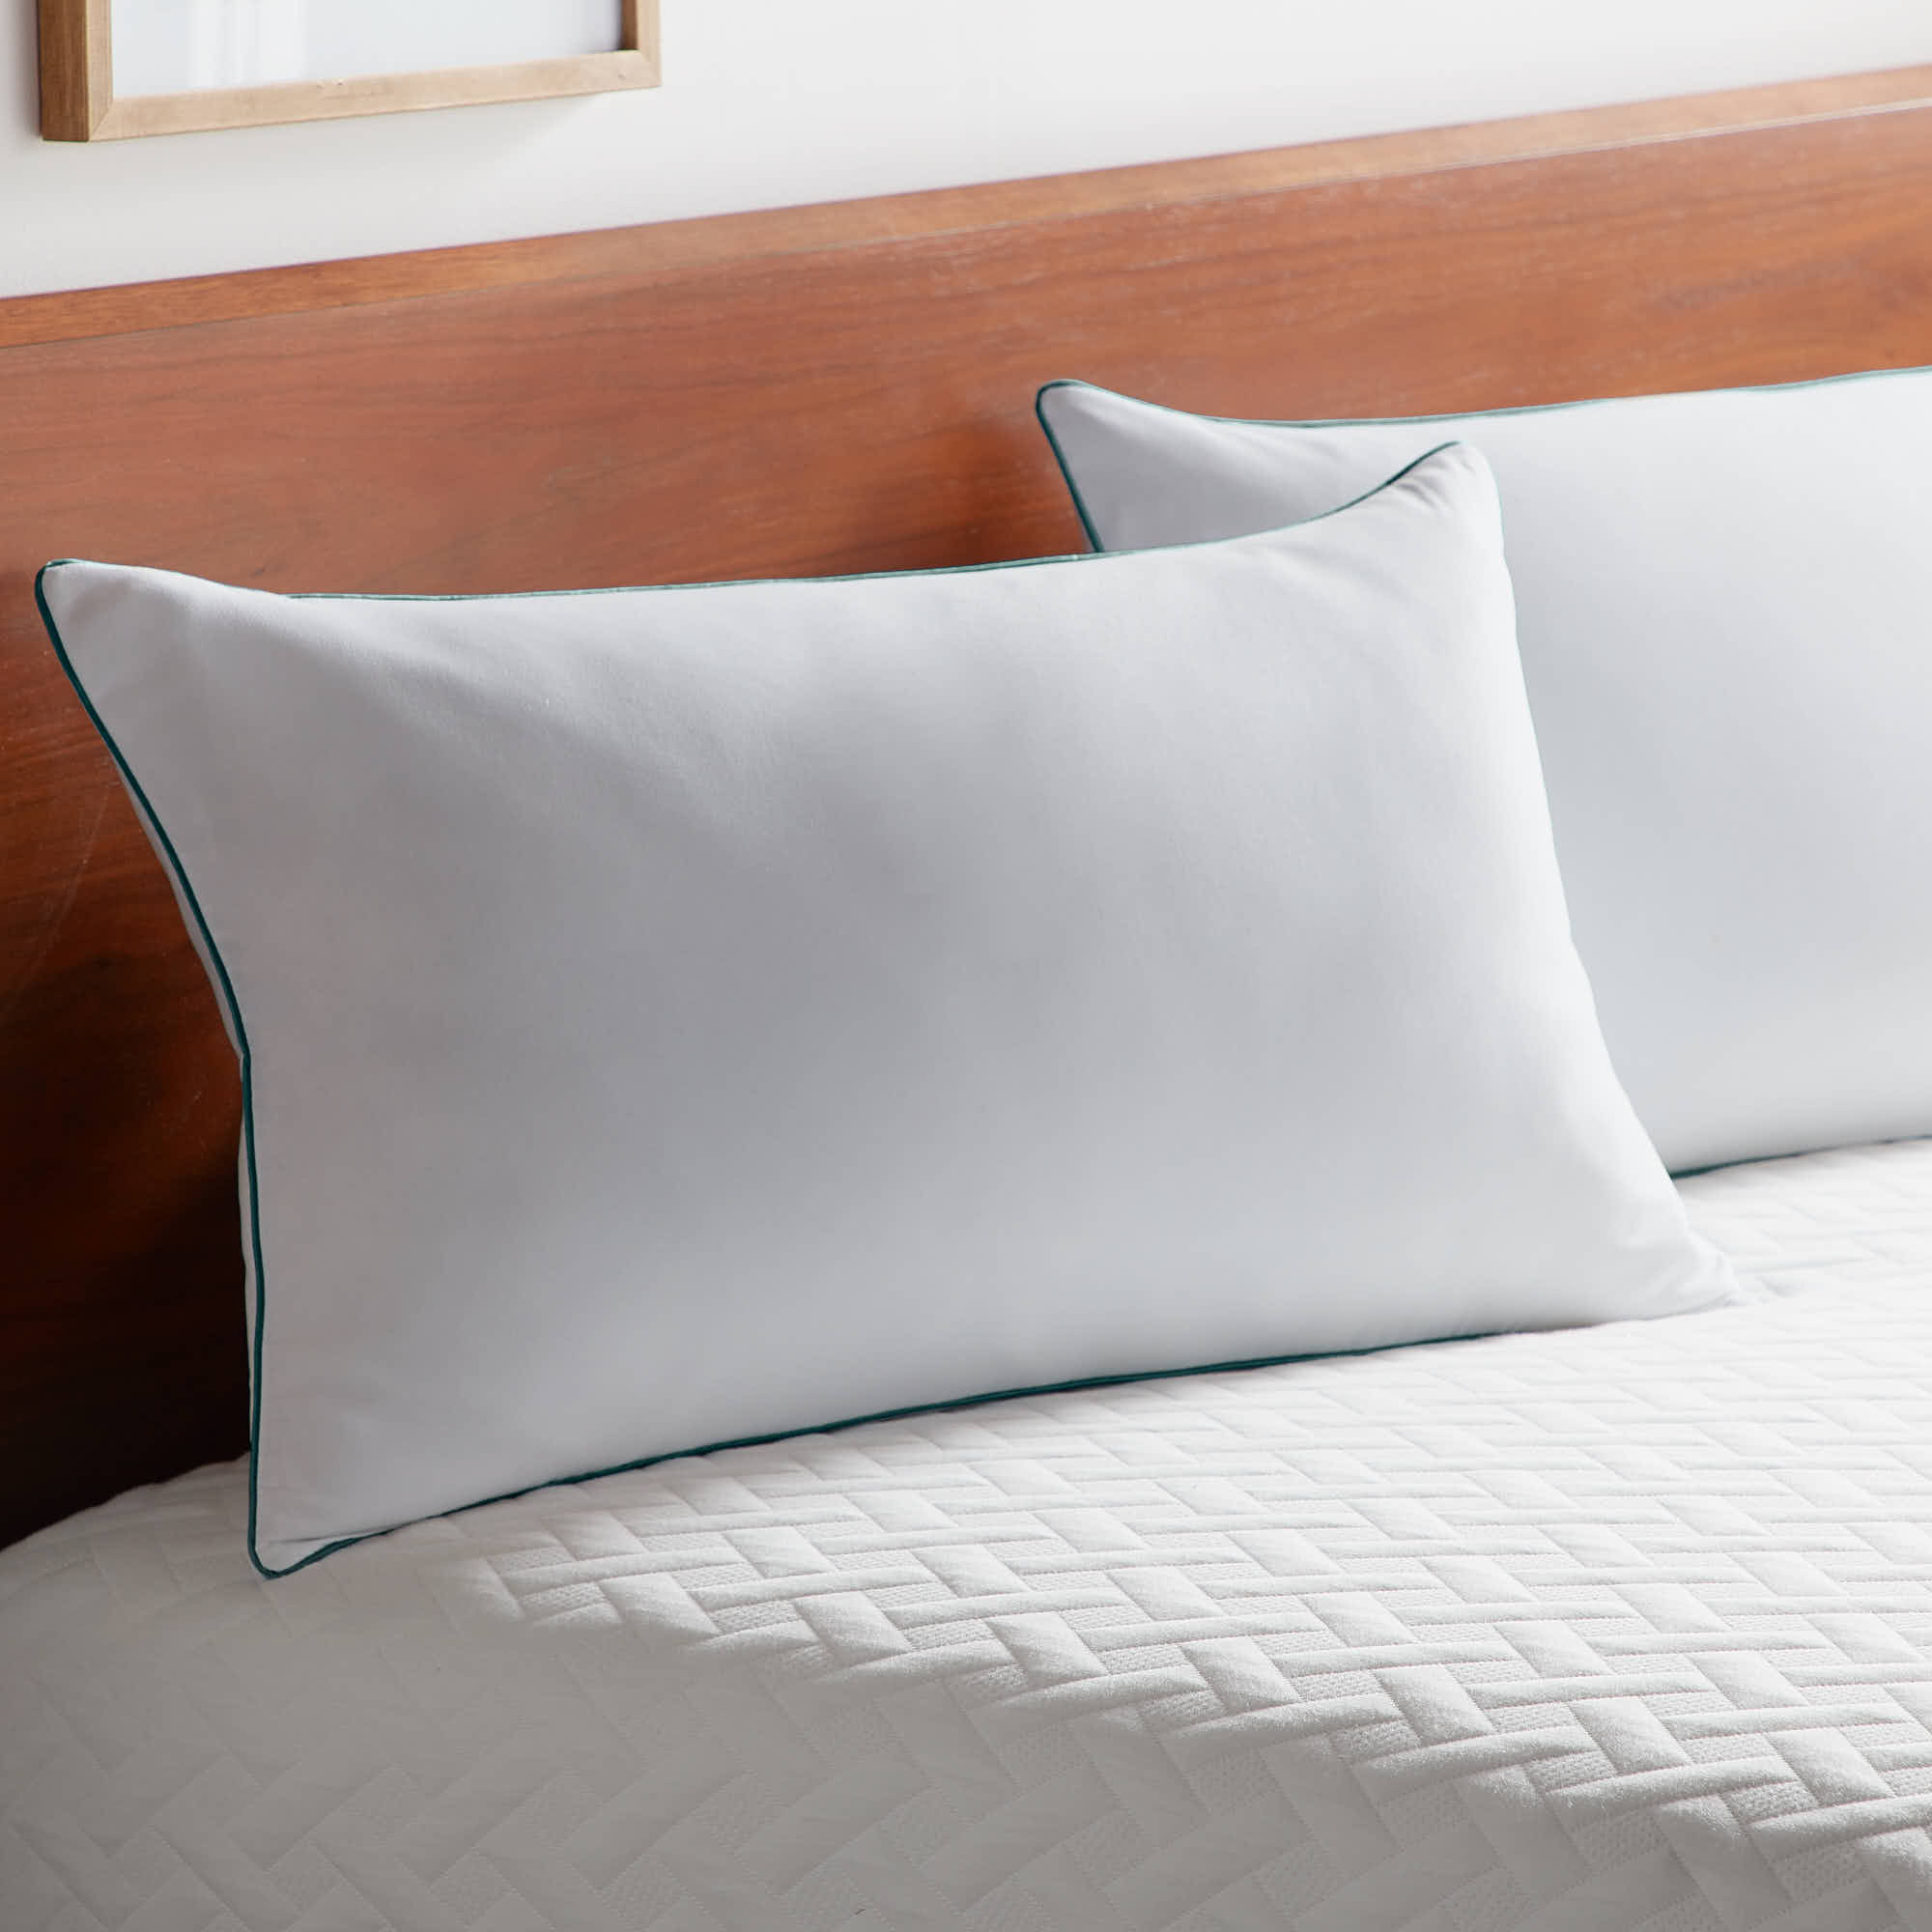 details about rest haven shredded memory foam pillow standard size 2 pack new free ship